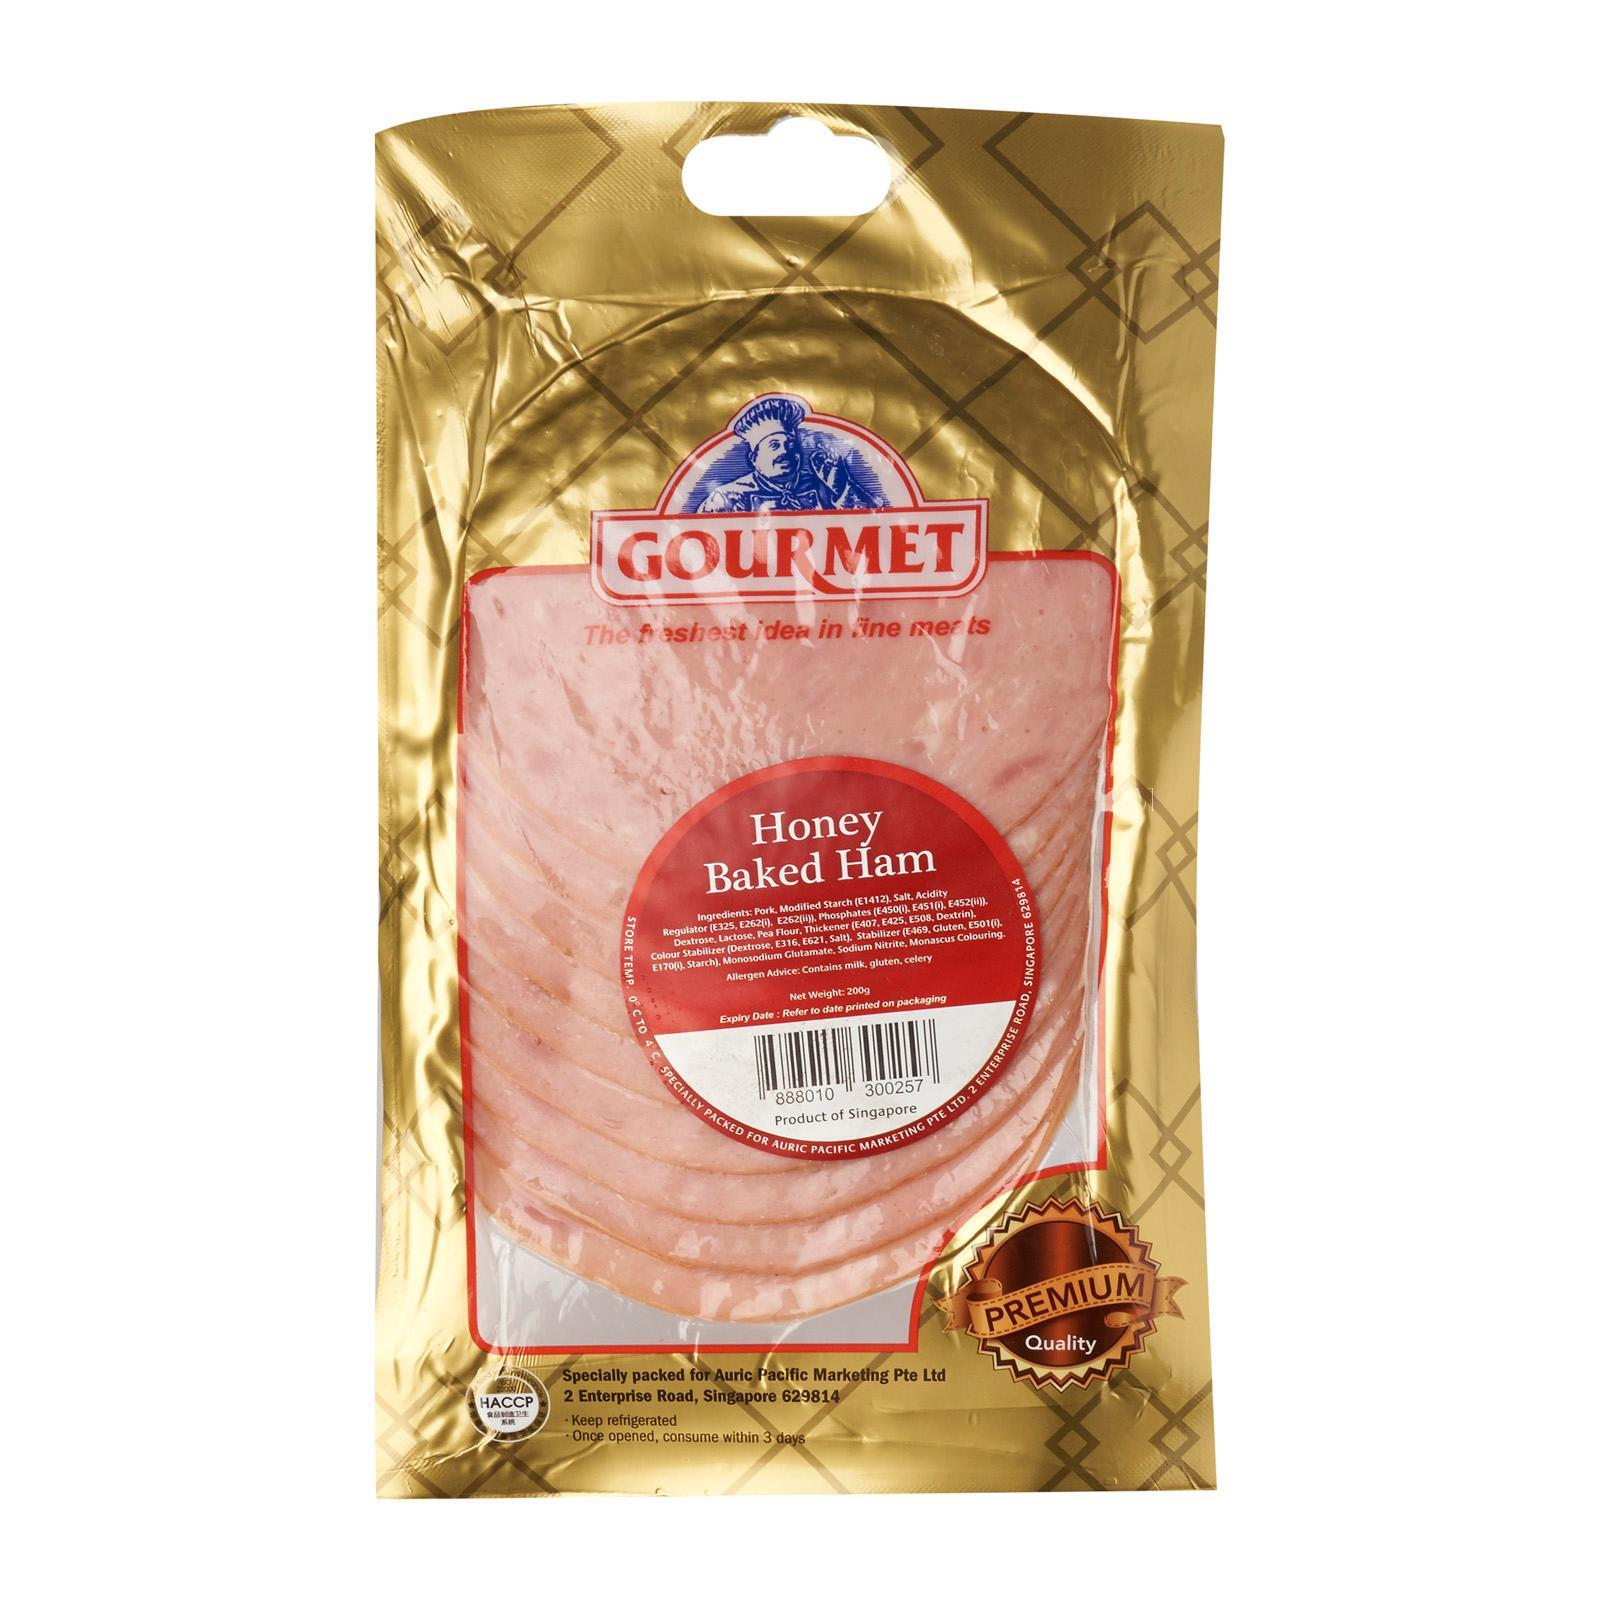 Gourmet Honey Baked Ham Deli Meats By Redmart